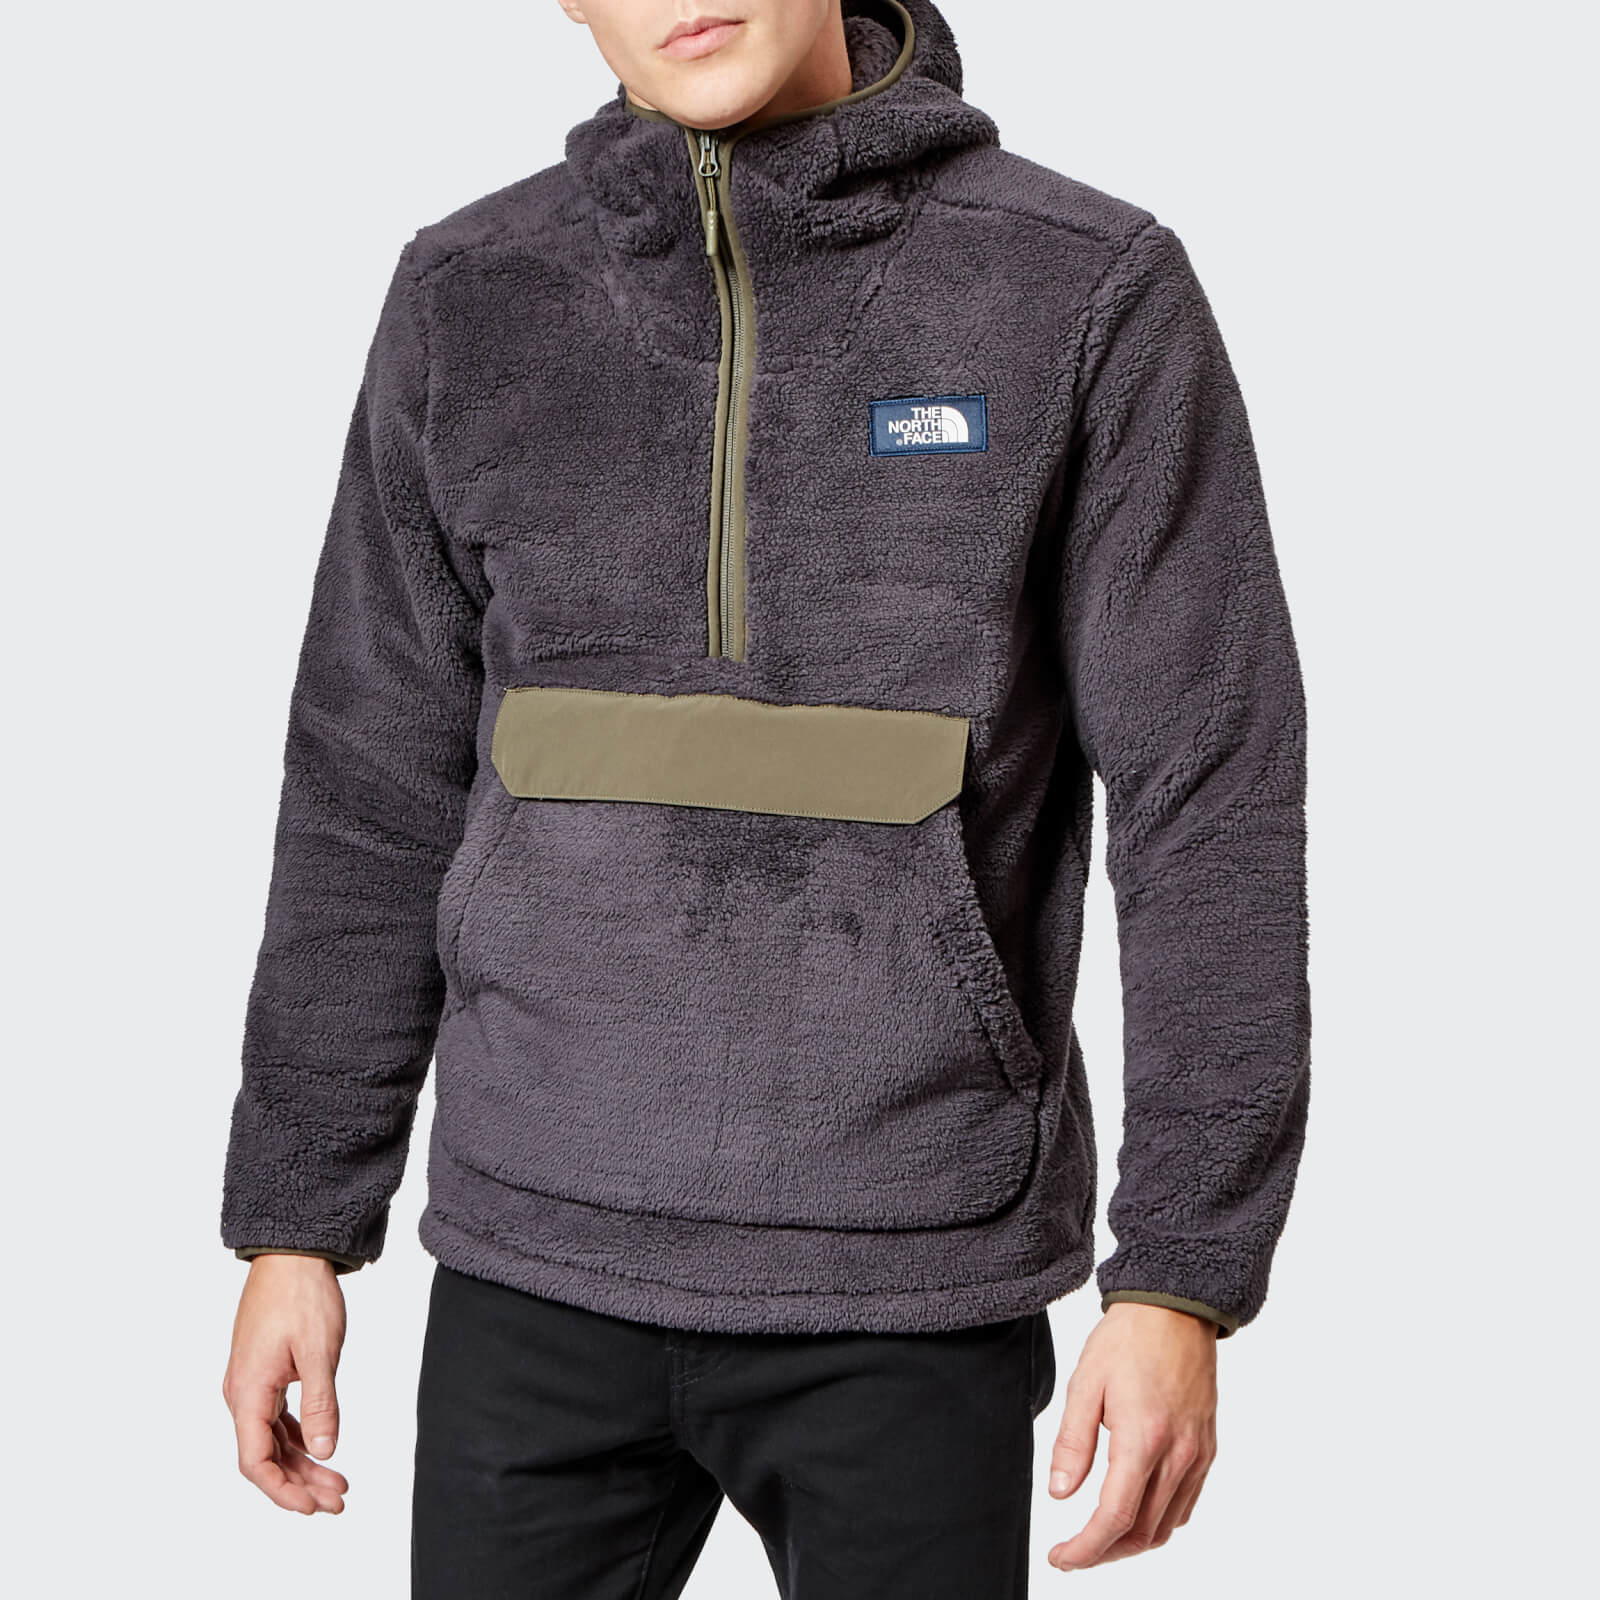 ada41fbe8 The North Face Men's Campshire Pullover Pile Hooded Fleece - Weathered  Black/New Taupe Green